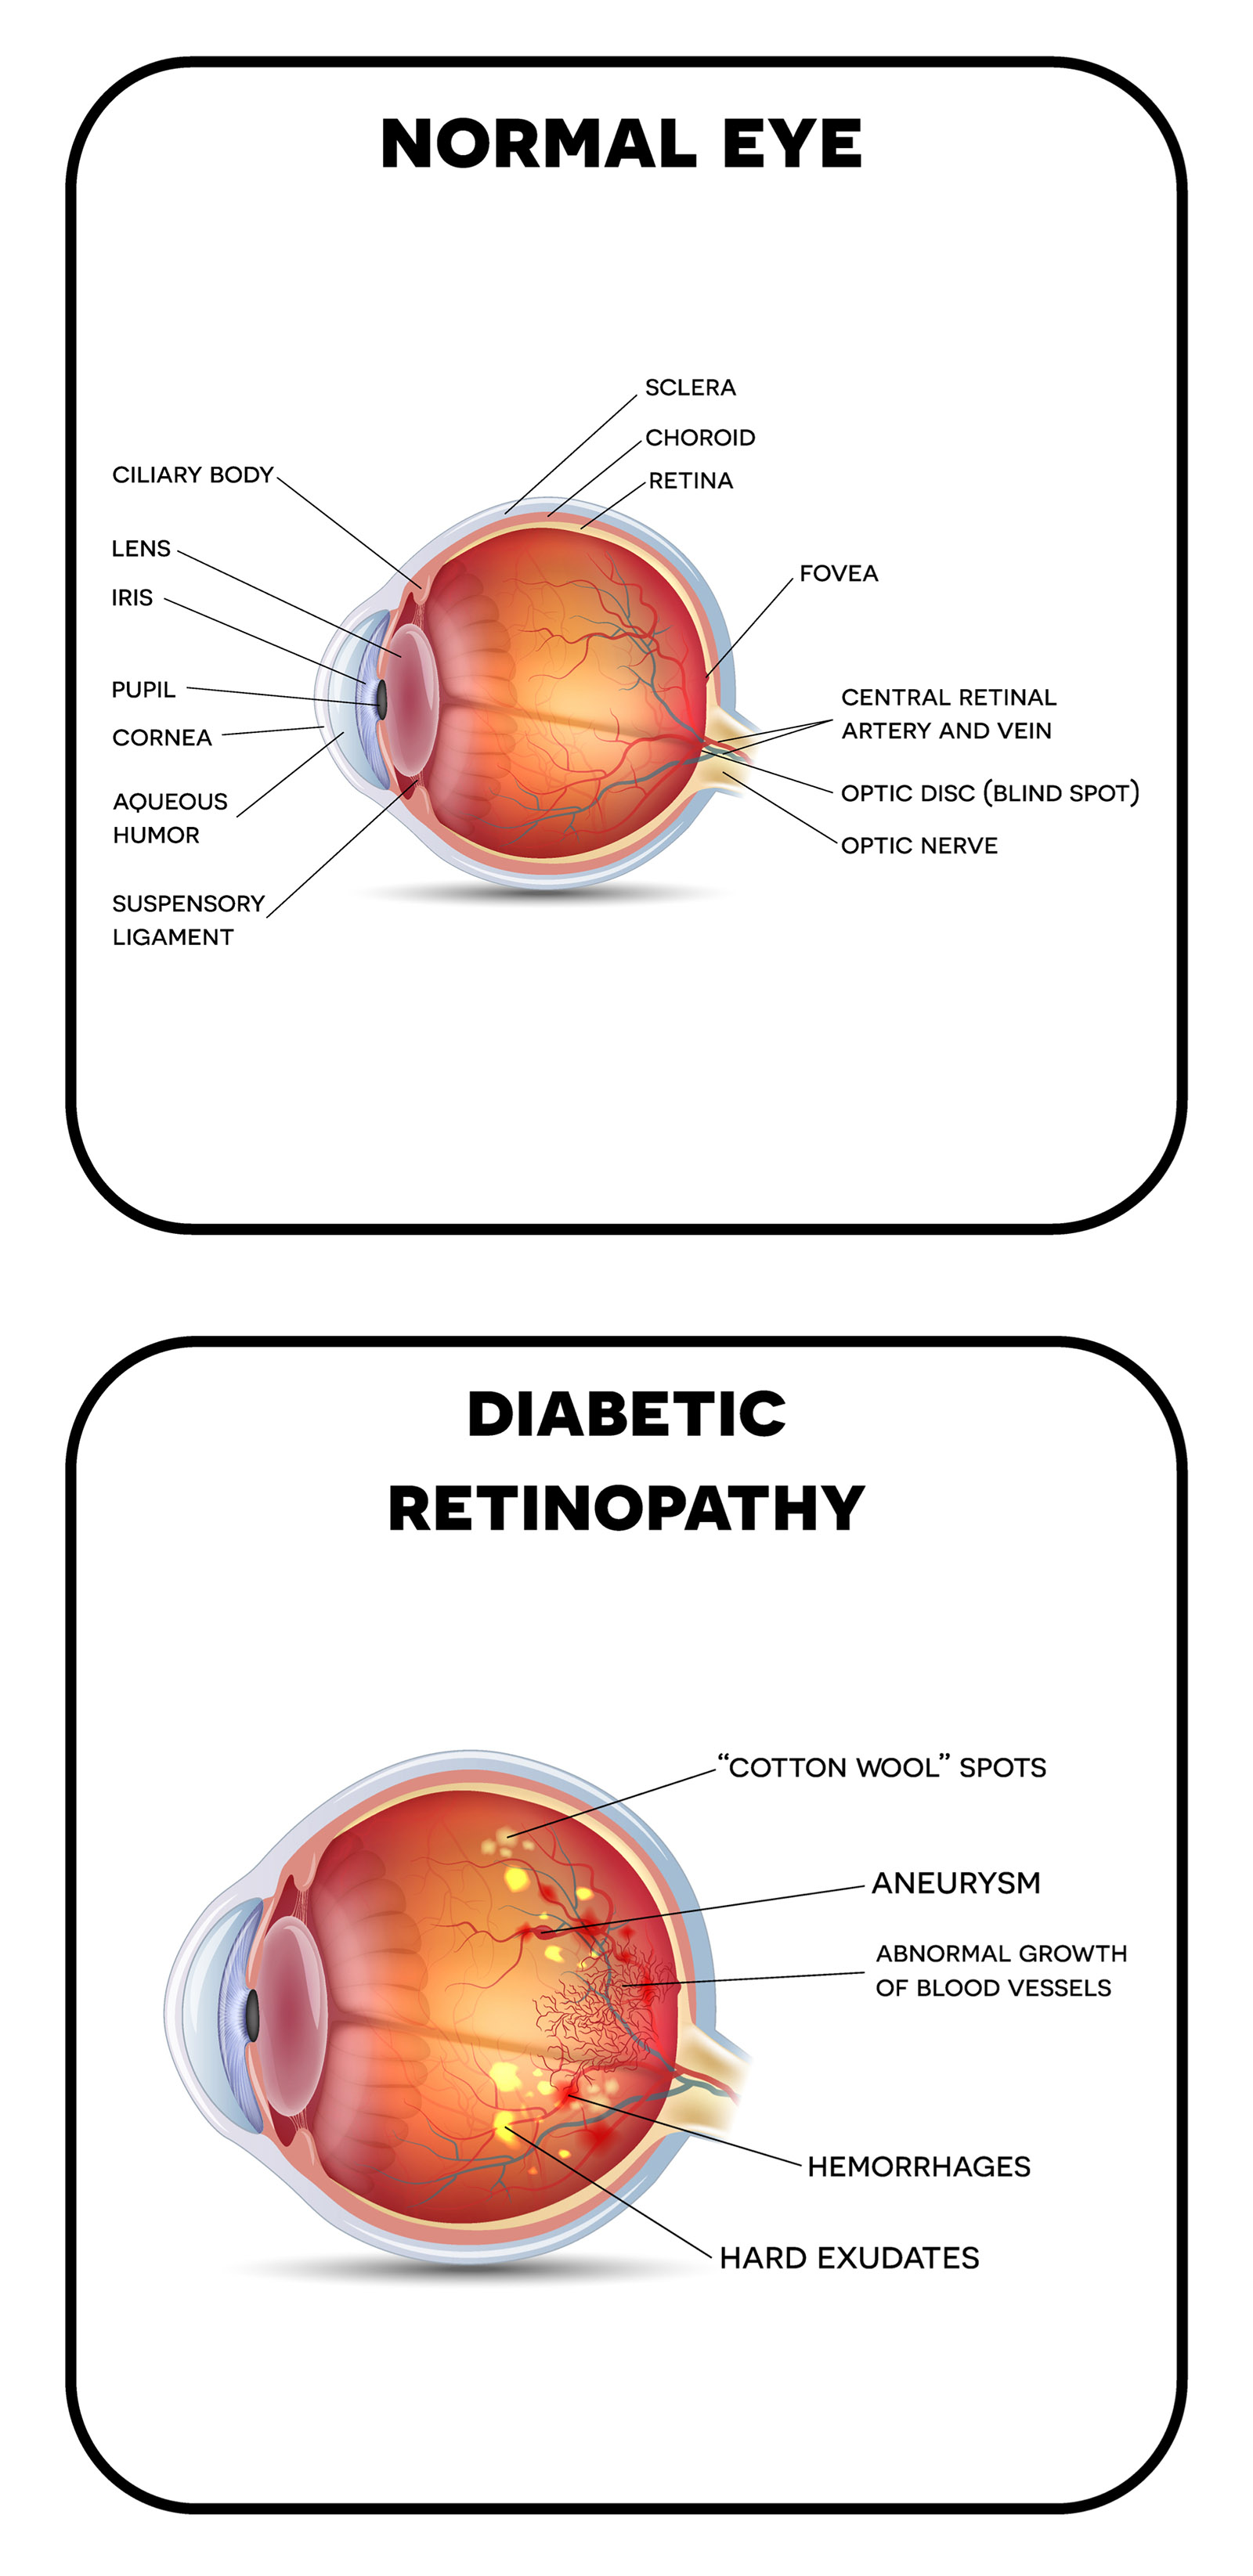 Normal-eye and Diabetic Retinopathy